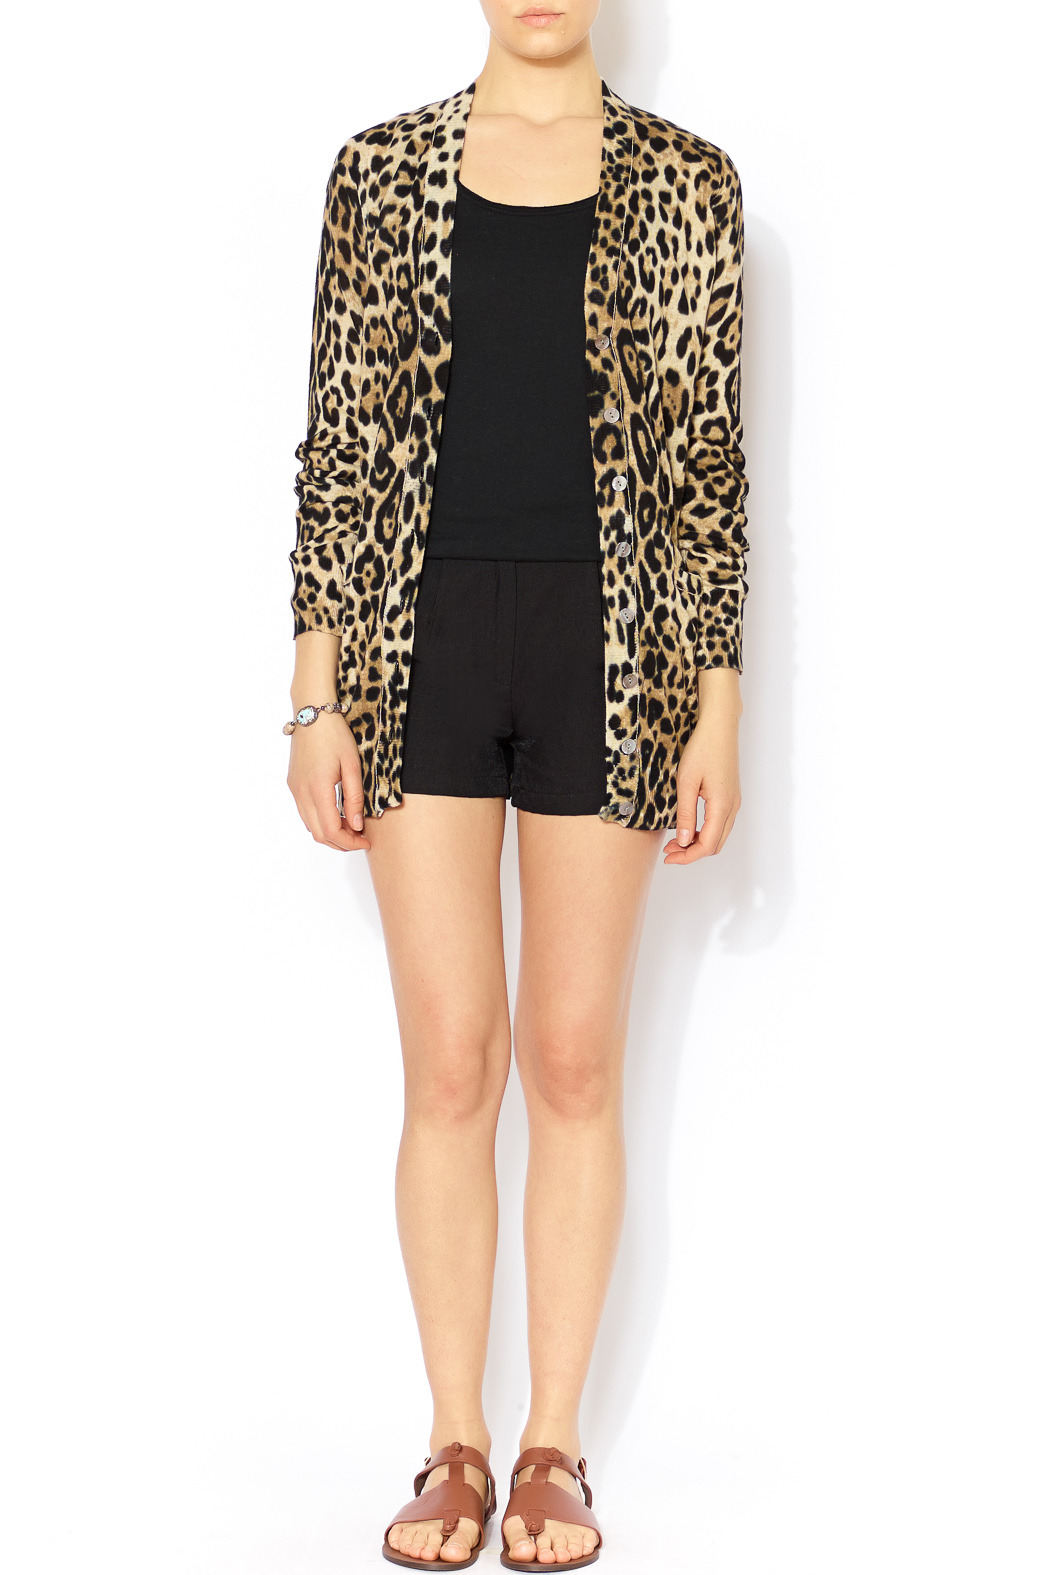 Ellison Leopard Print Cardigan from Glendale by Pink House ...